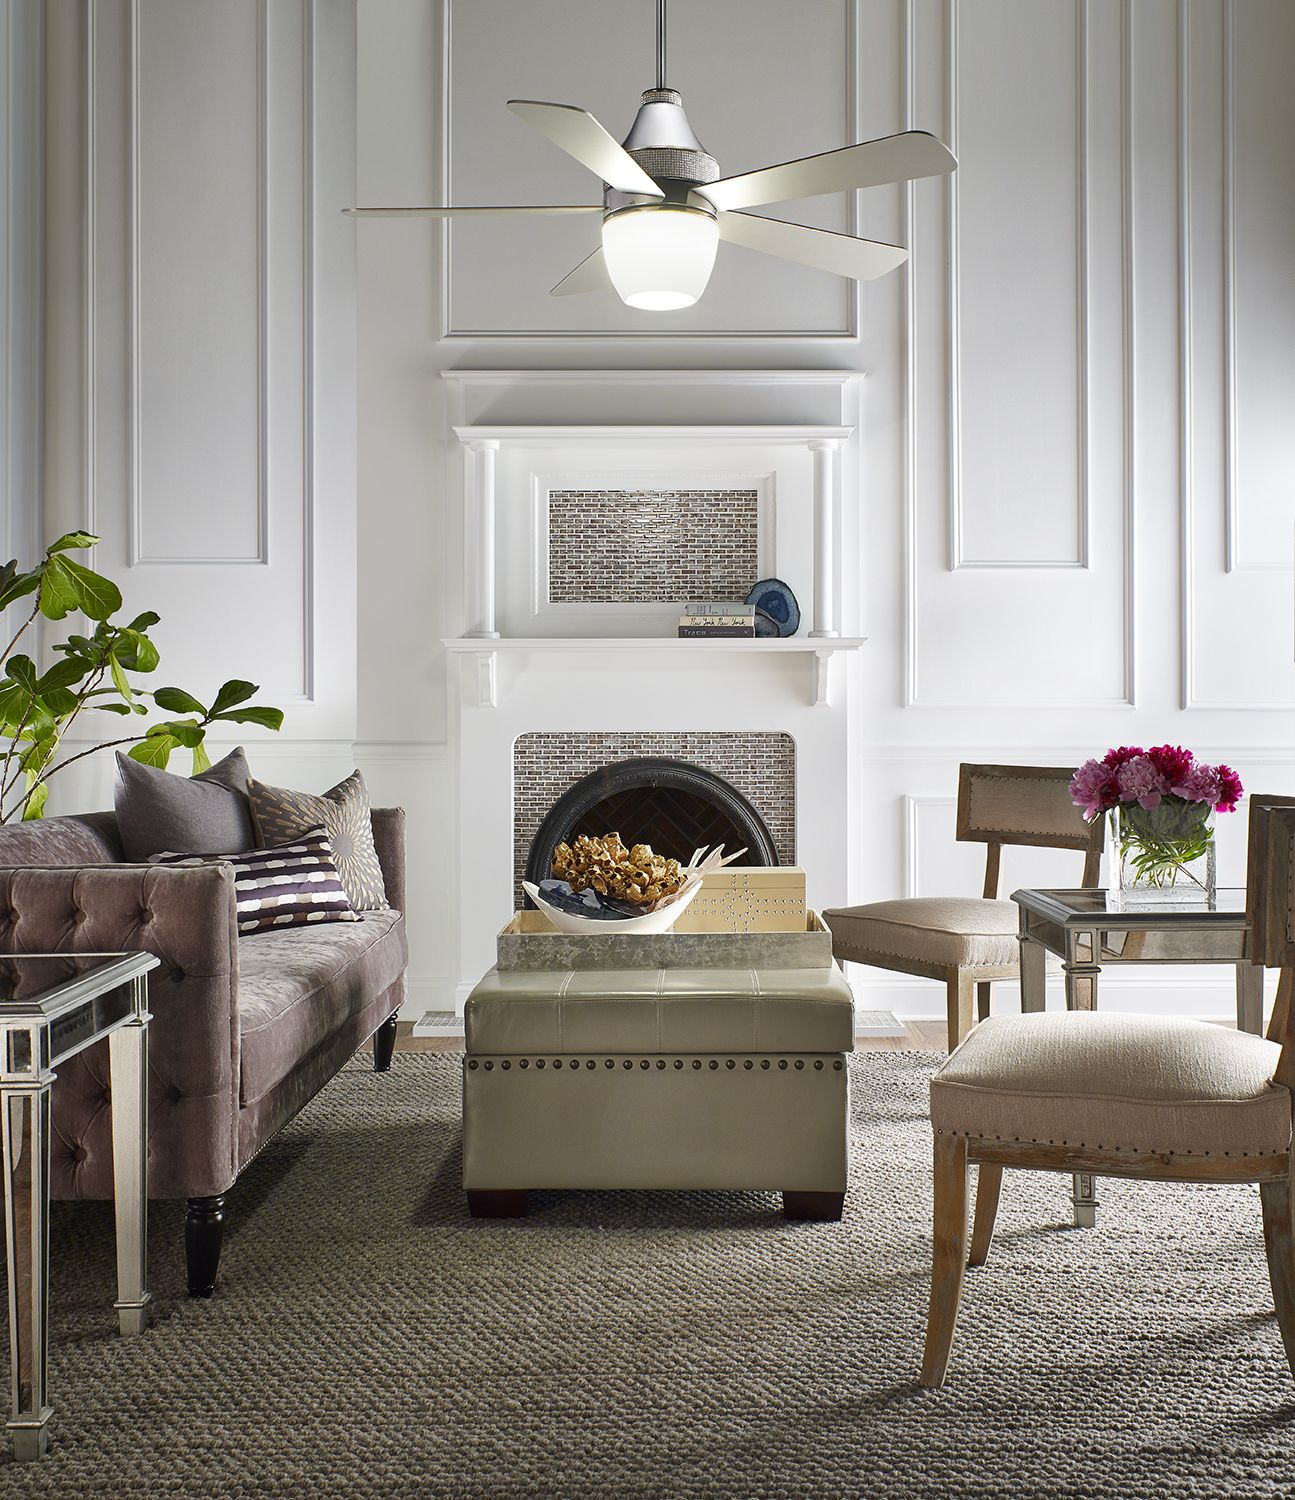 Inspired by the latest Hollywood Regency interior designs and